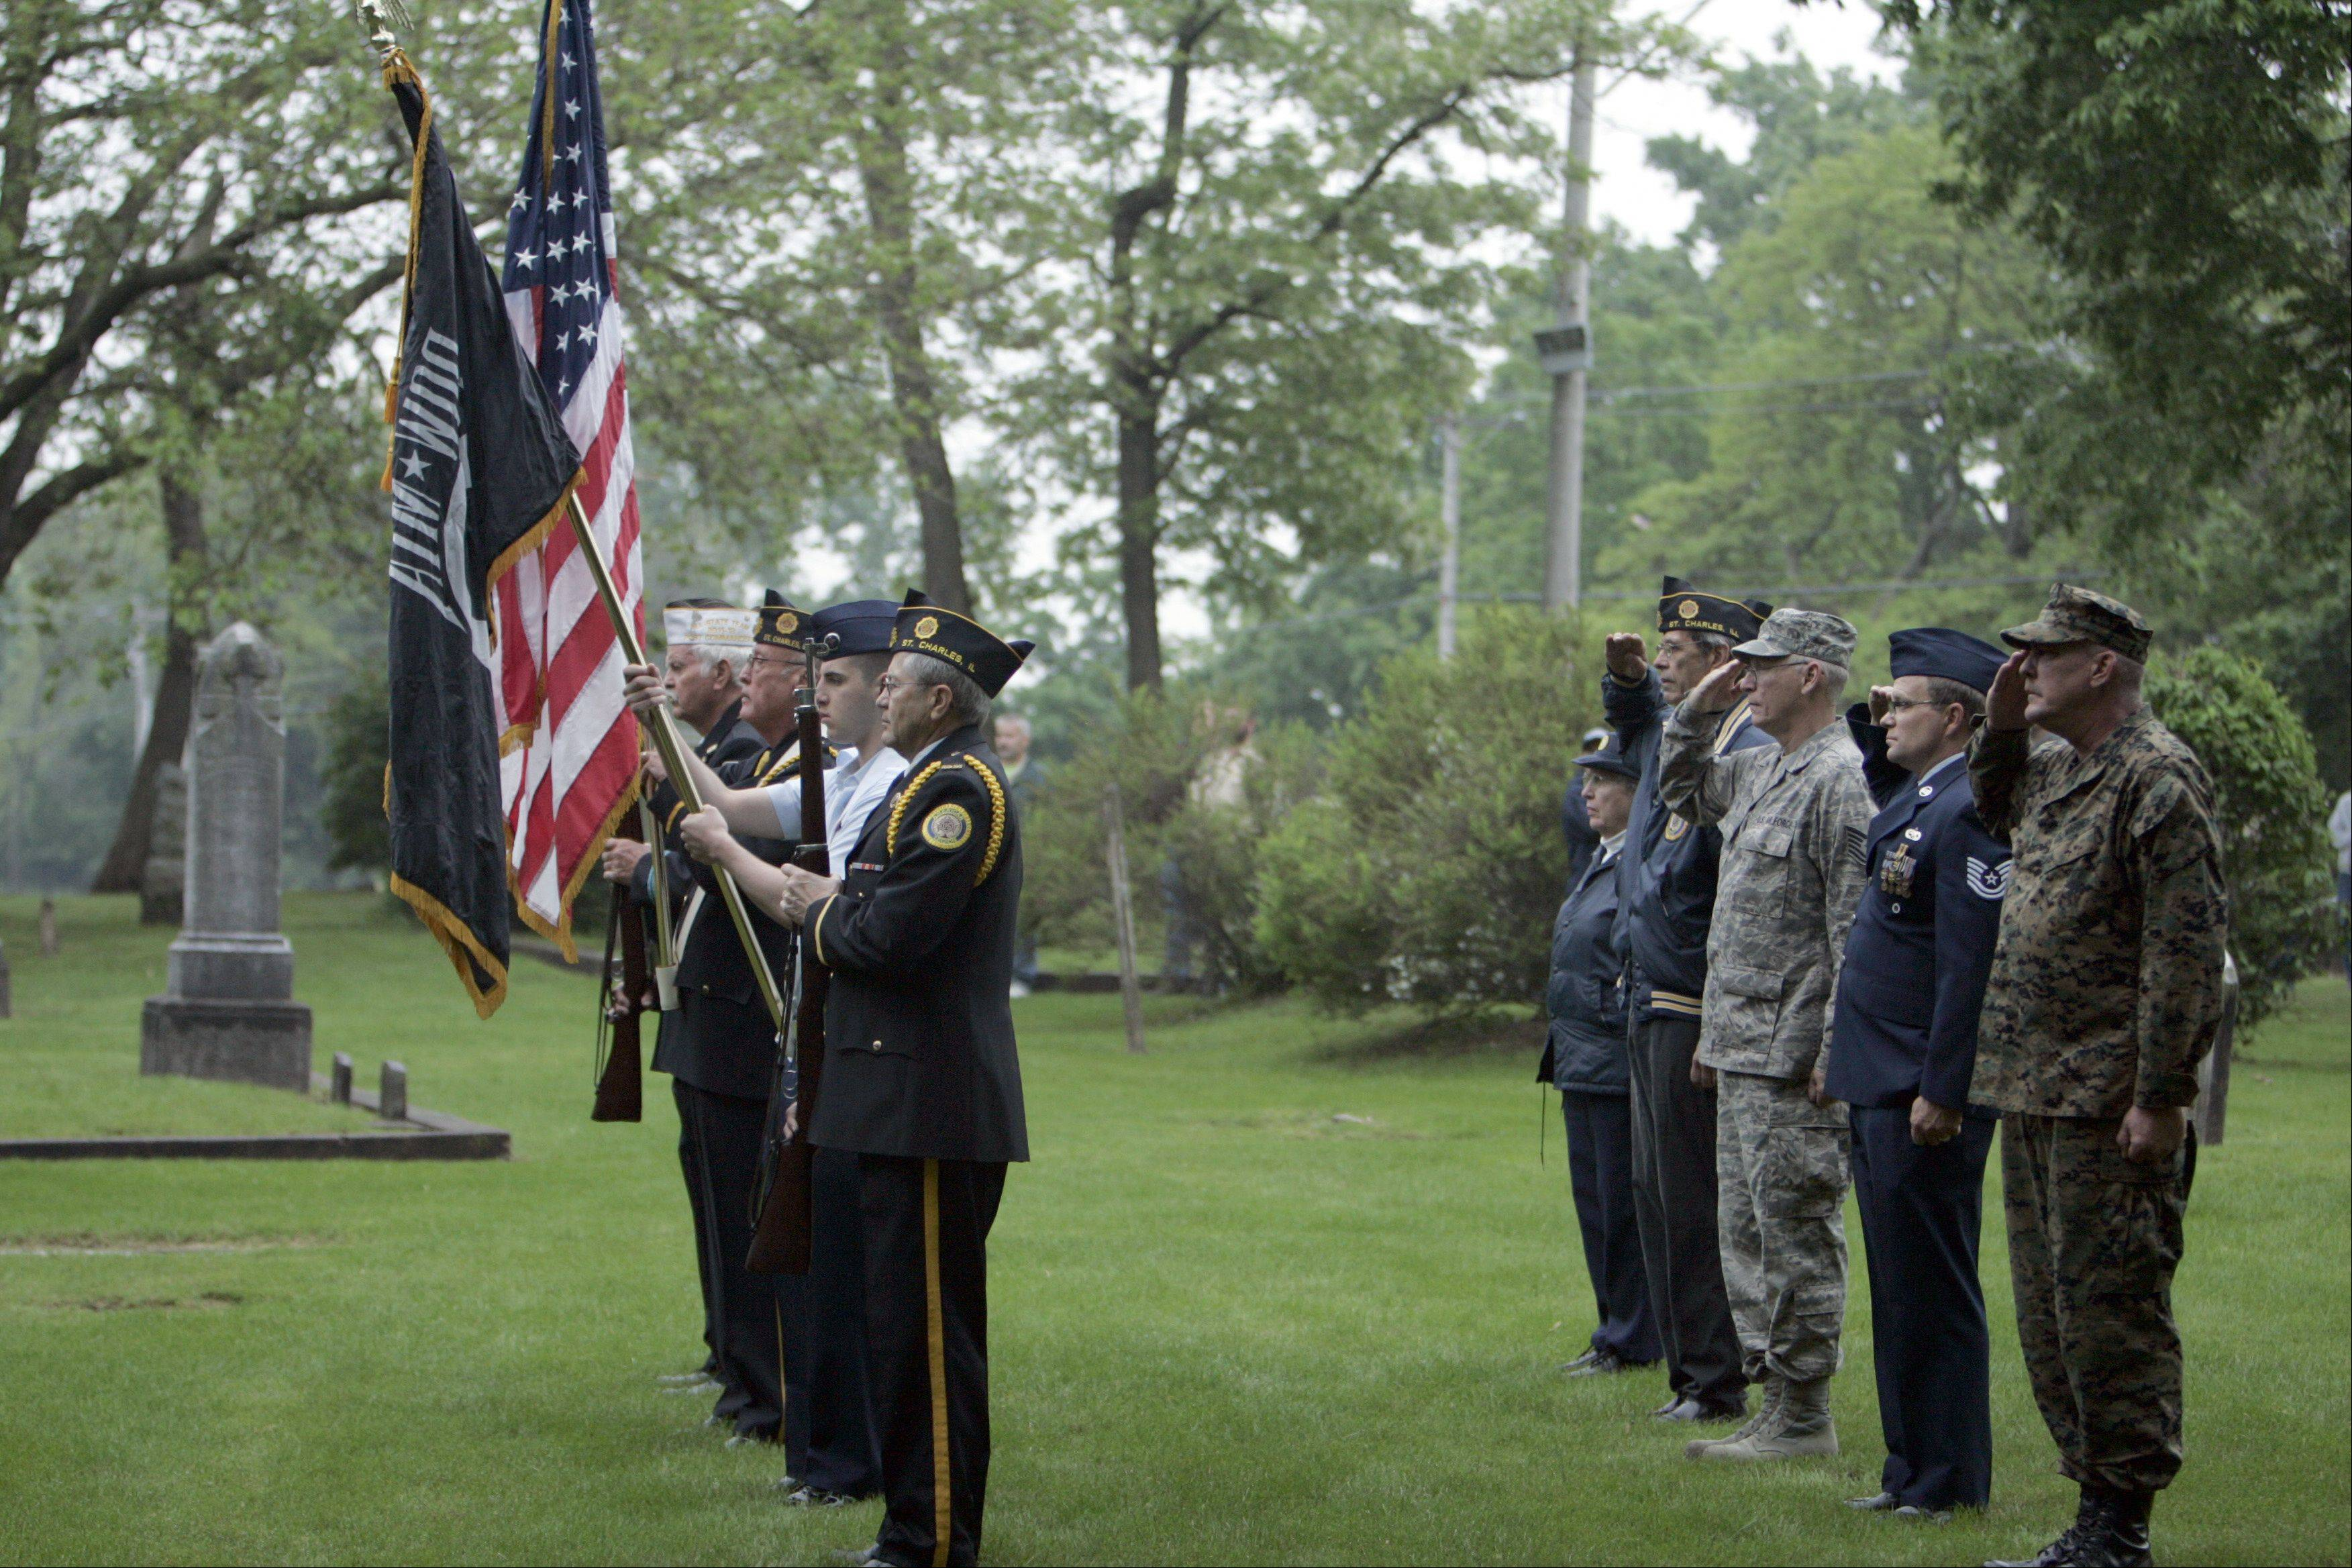 The color guard presents the colors during the Memorial Day celebration at South Cemetery in St. Charles early Monday morning.